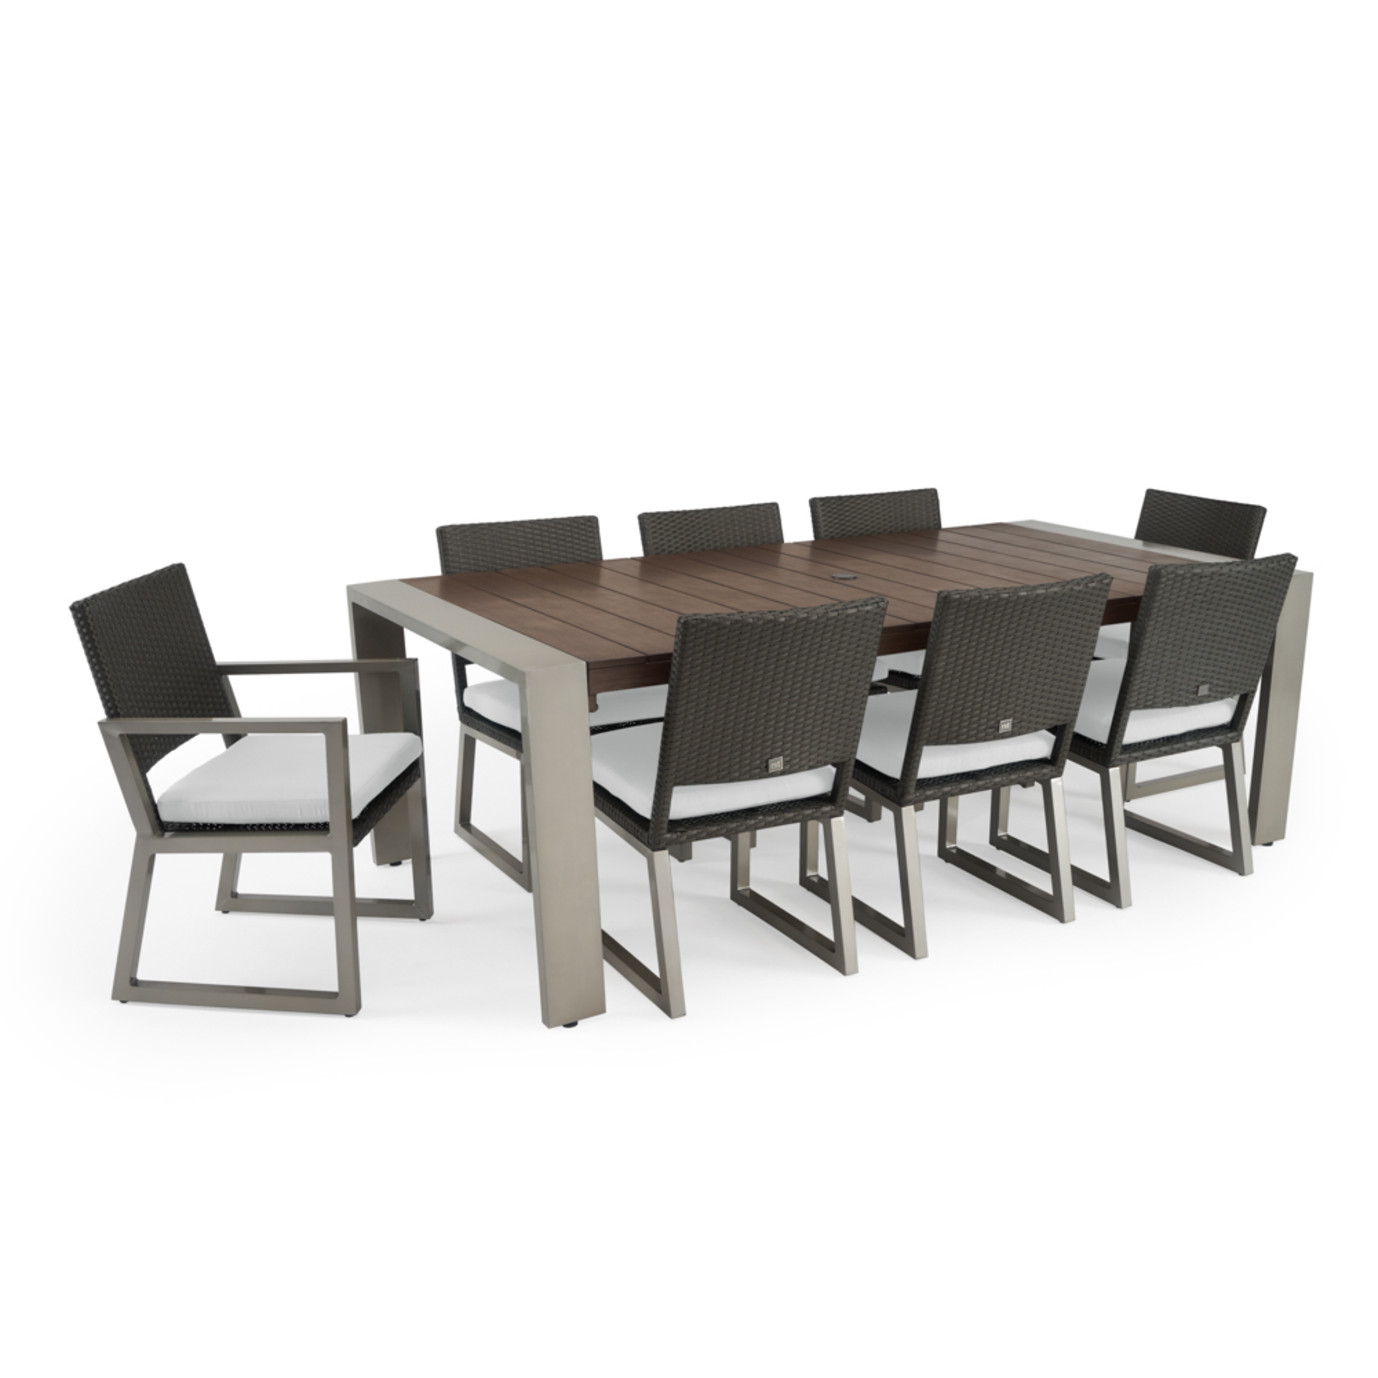 Milo™ Espresso 9pc Dining Set - Moroccan Cream